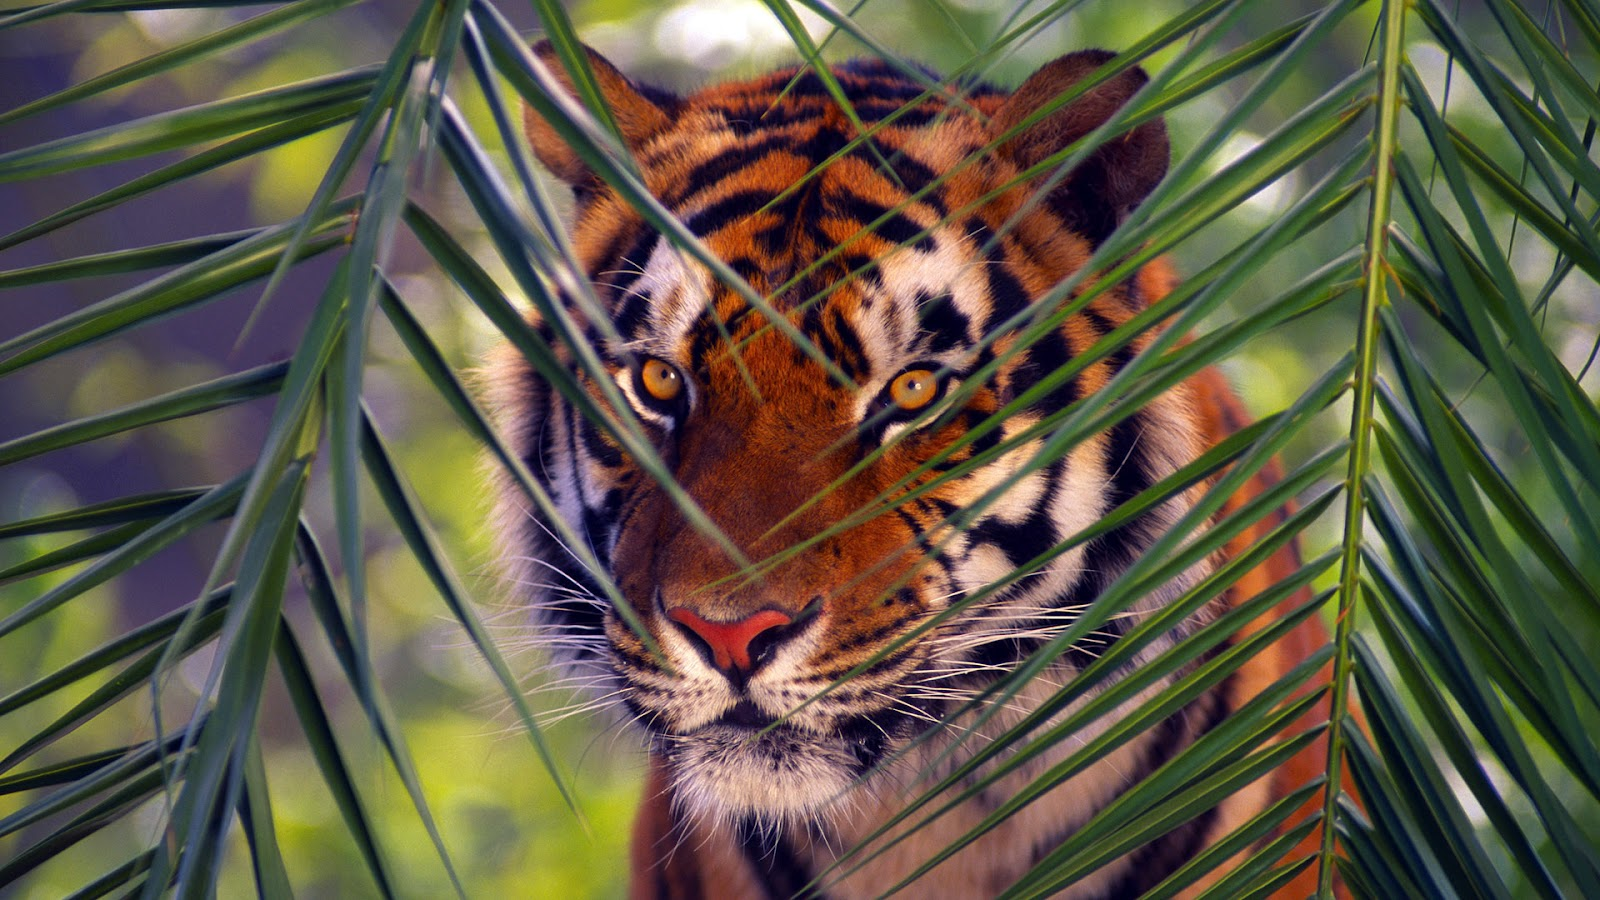 tiger wallpaper | hdwannabig